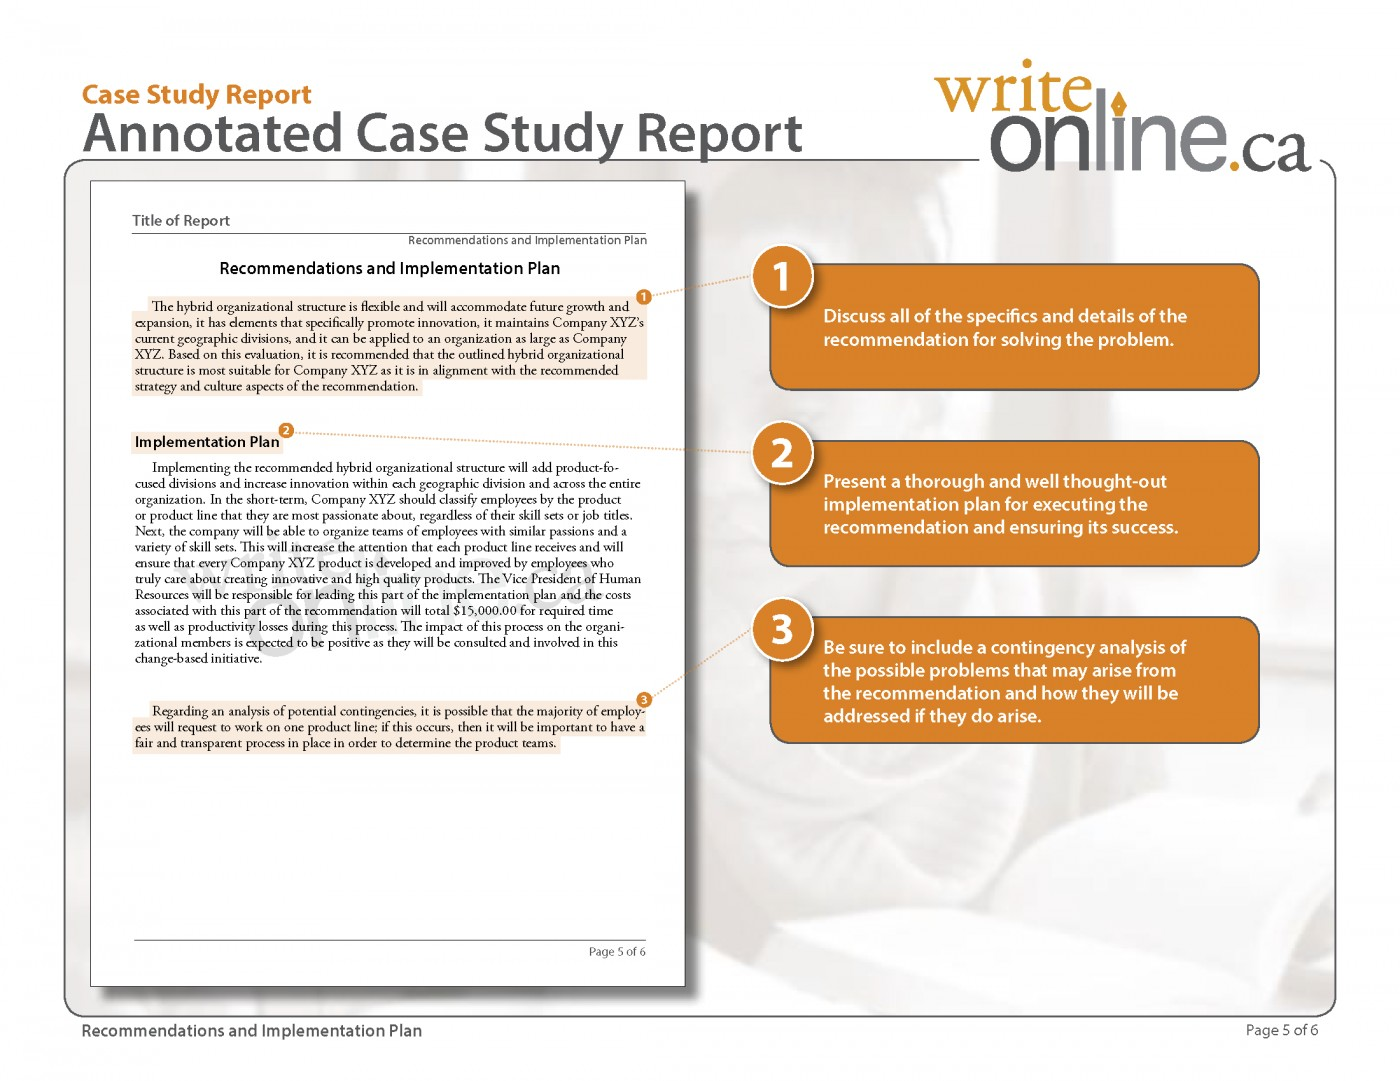 016 Components Of Research Paper In Apa Format Casestudy Annotatedfull Page 5 Stirring A 1400